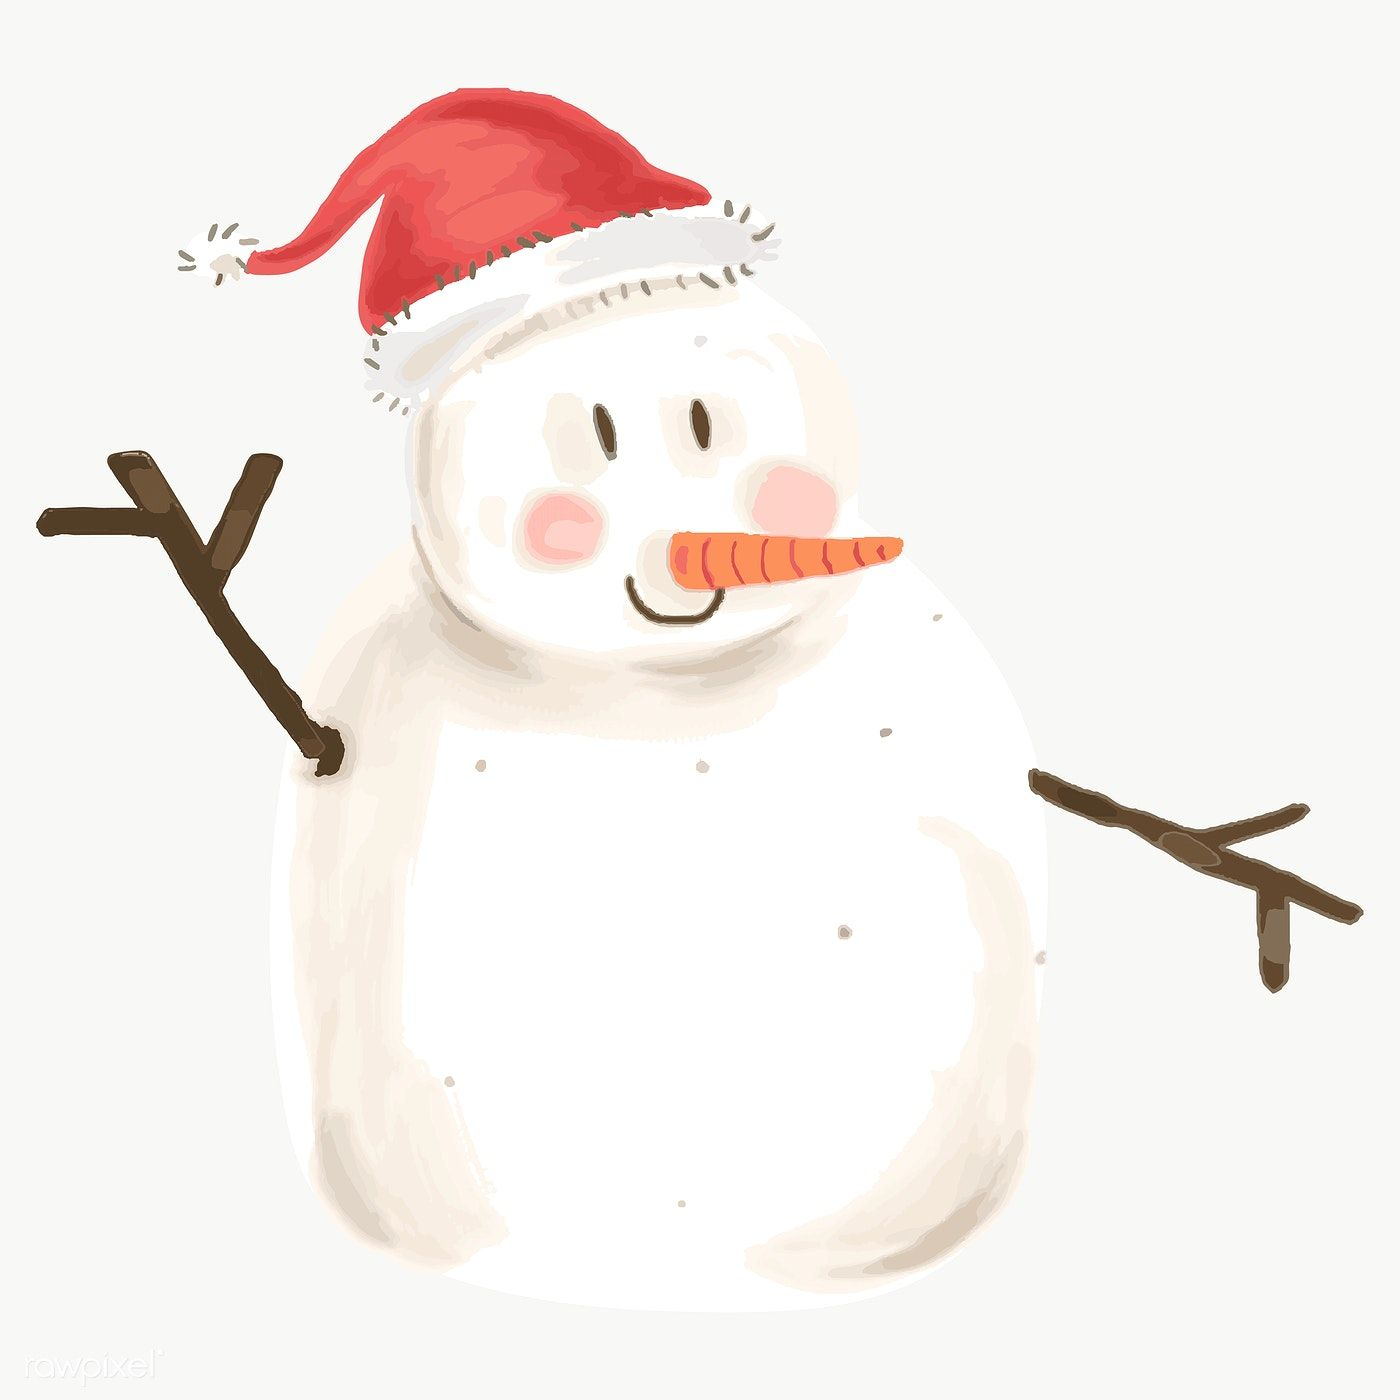 Download Premium Png Of Cute Snowman Christmas Element Transparent Png Cute Snowman Christmas Snowman Christmas Icons